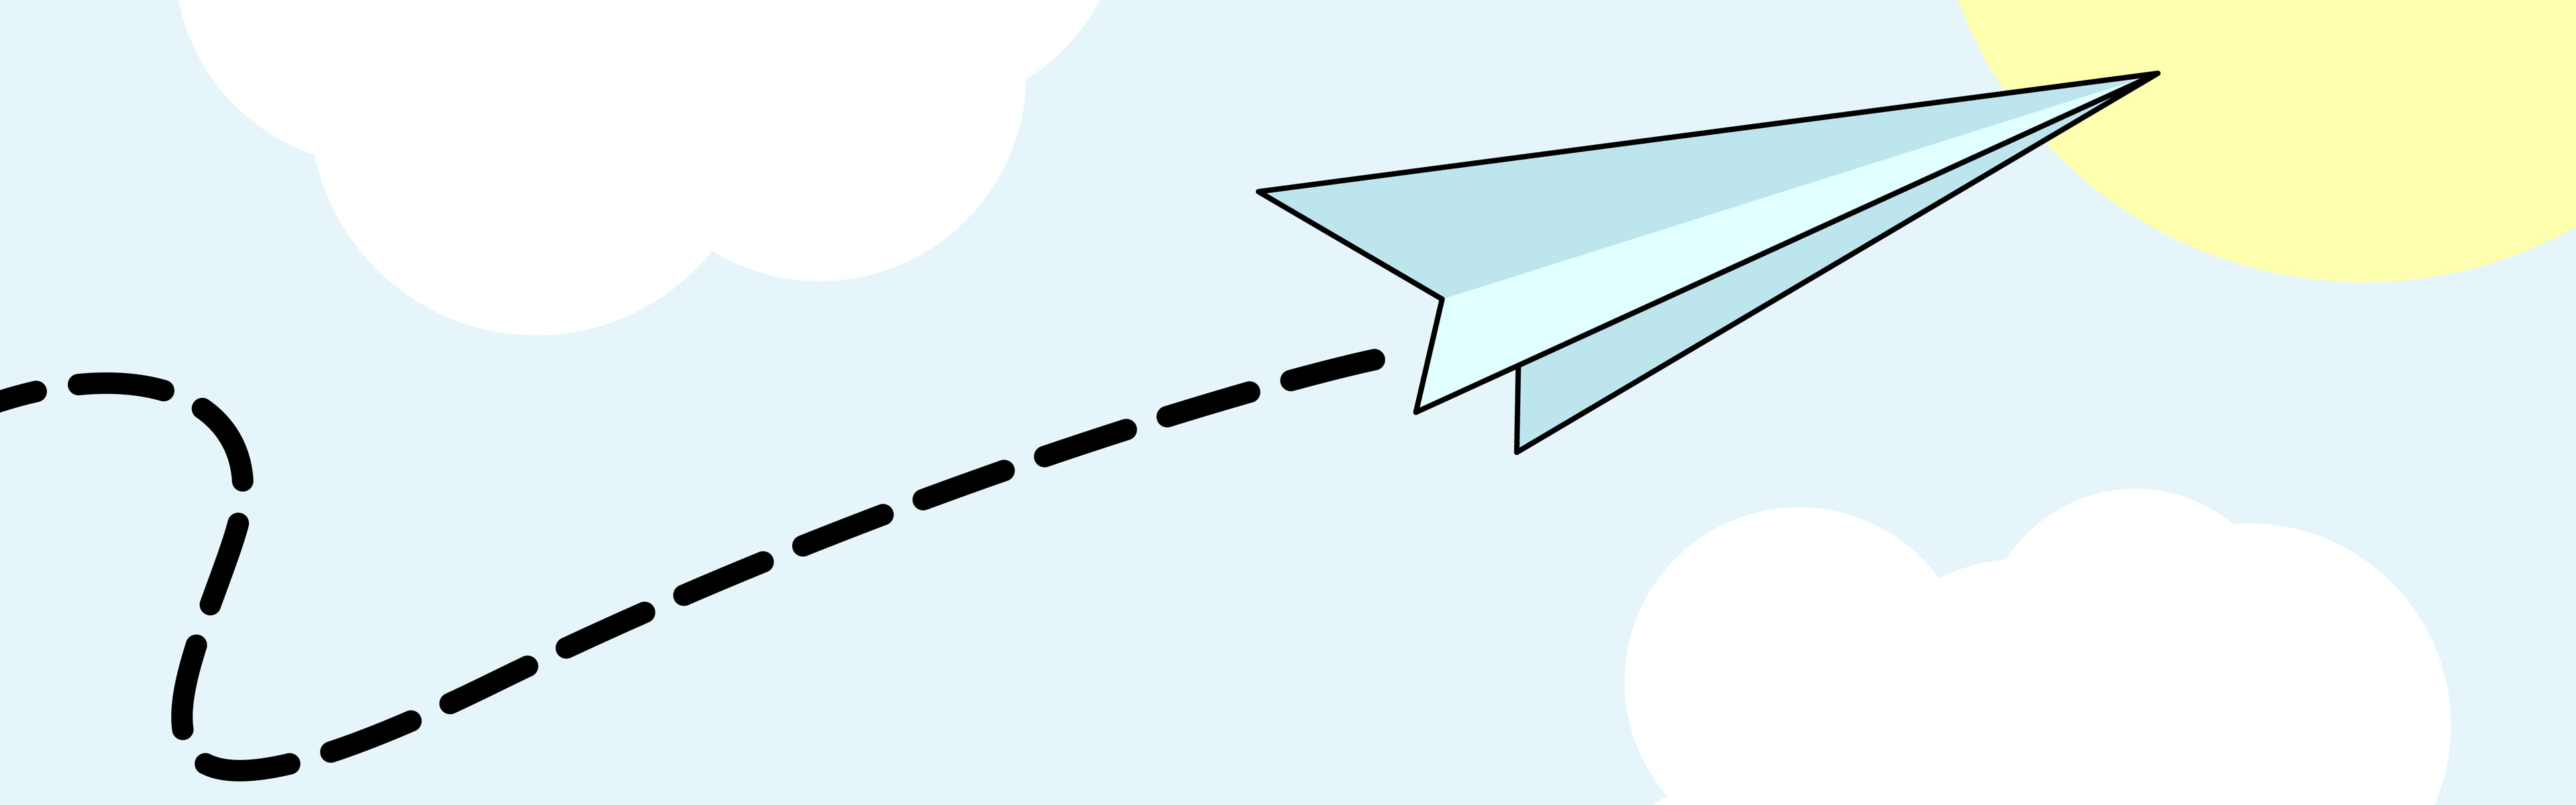 3840x1200 Image Of Paper Airplane Clipart